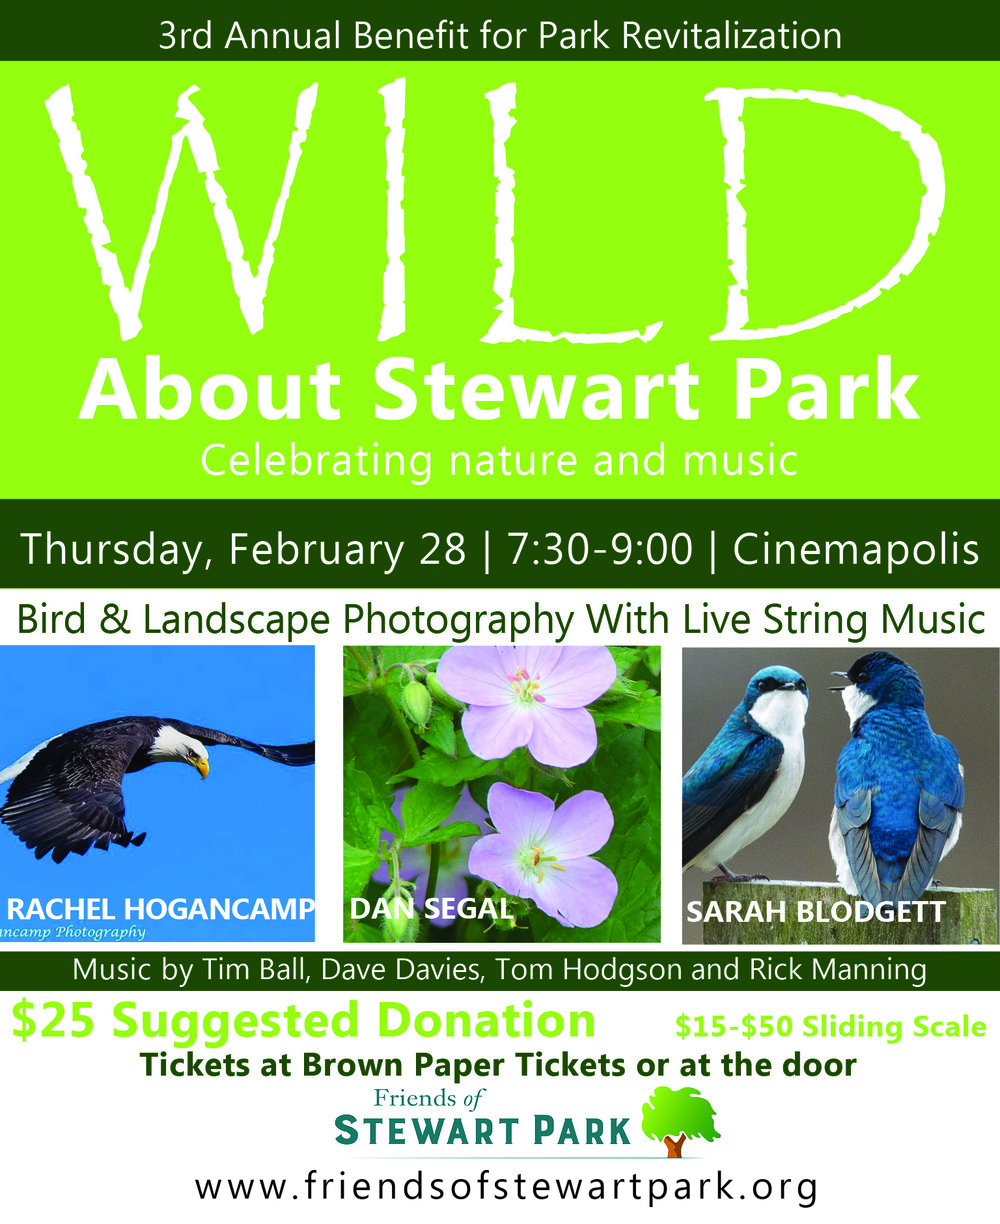 Wild about stewart park 2019 small pic dave added.jpg